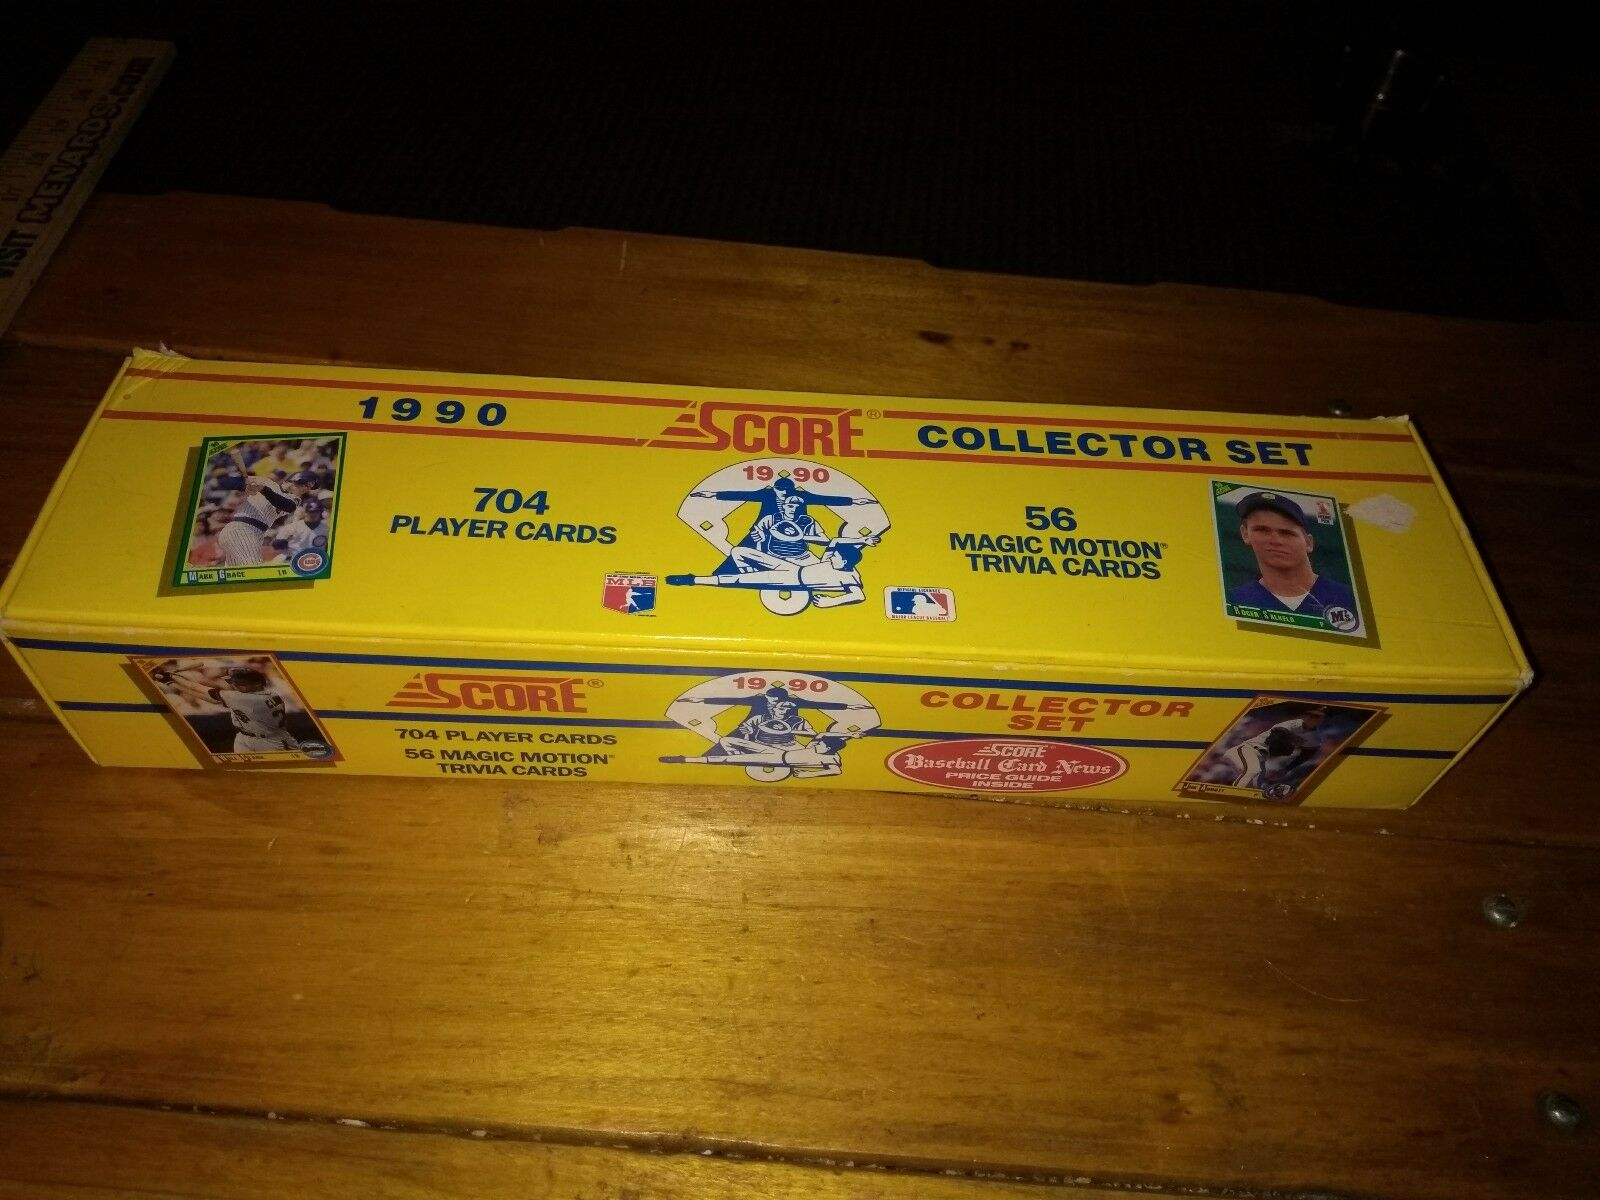 1990 Score Baseball Cards Collector Set Out Of Plastic Box 704 Player Cards